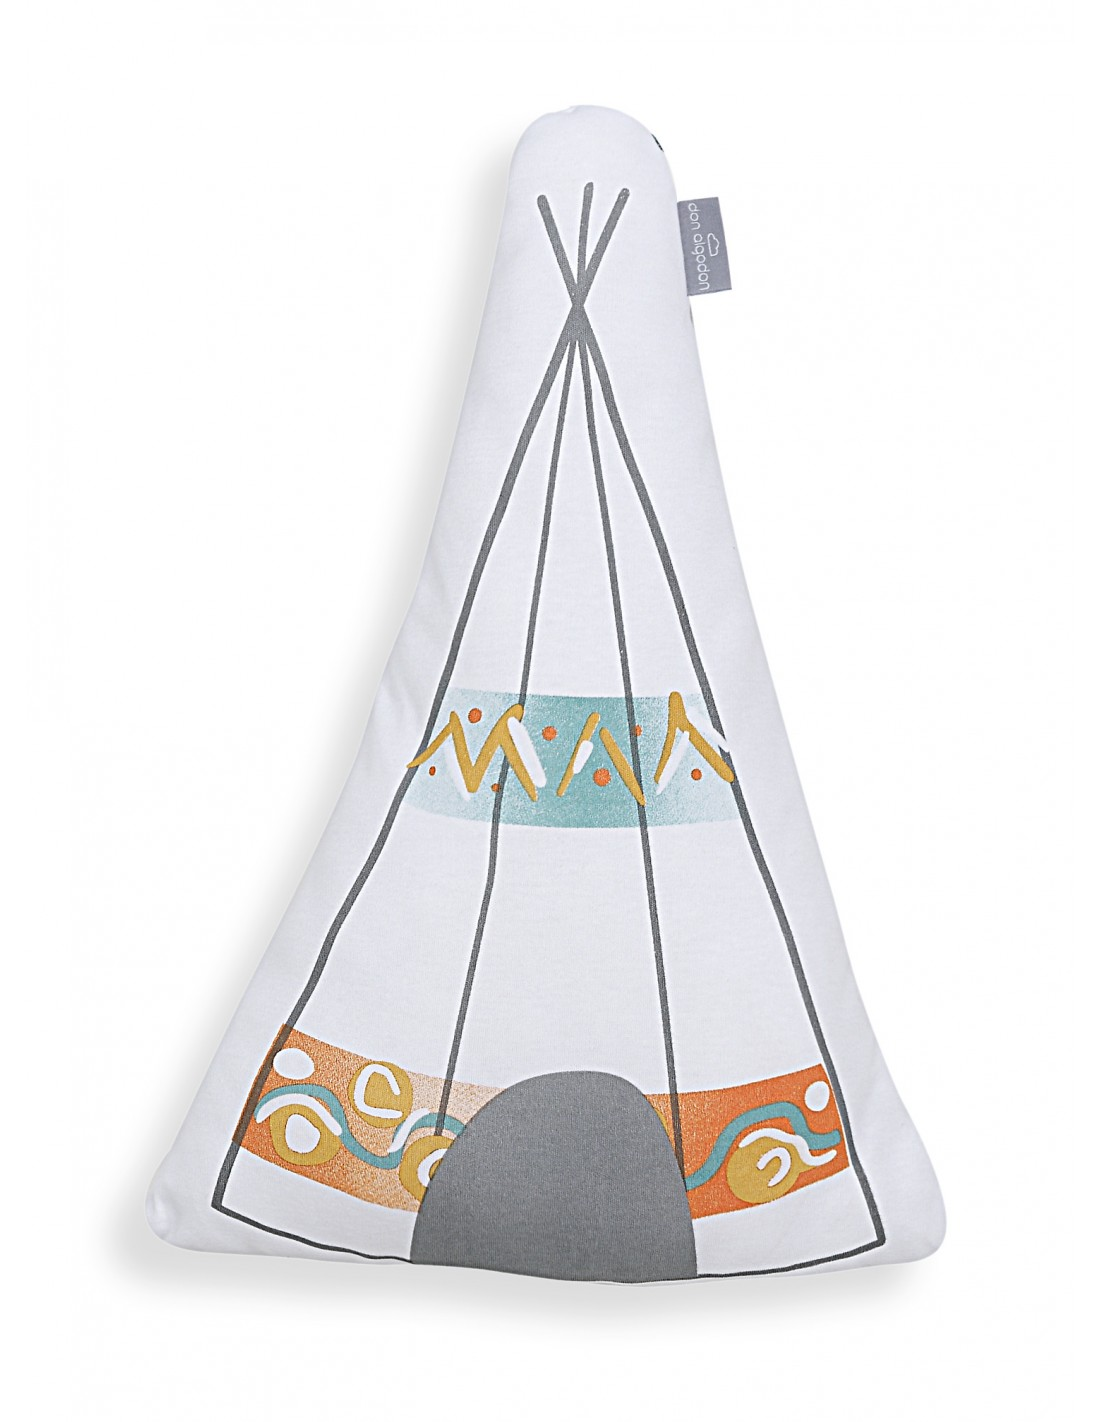 cojin-decorativo-tipi-dakota-de-don-algodon